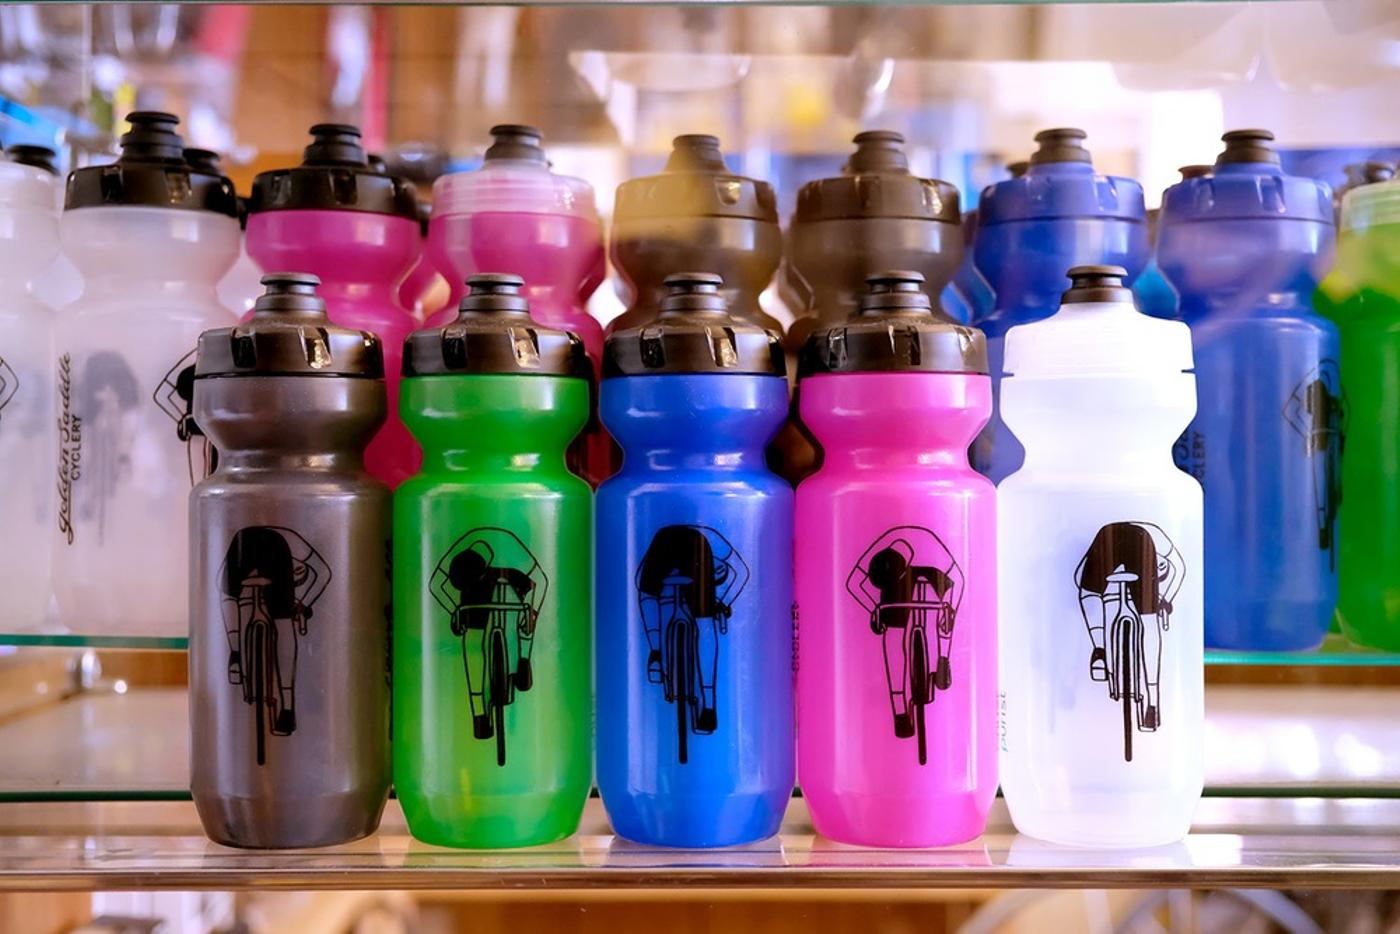 Golden Saddle Cyclery Dropper Bottles by Geoff McFetridge